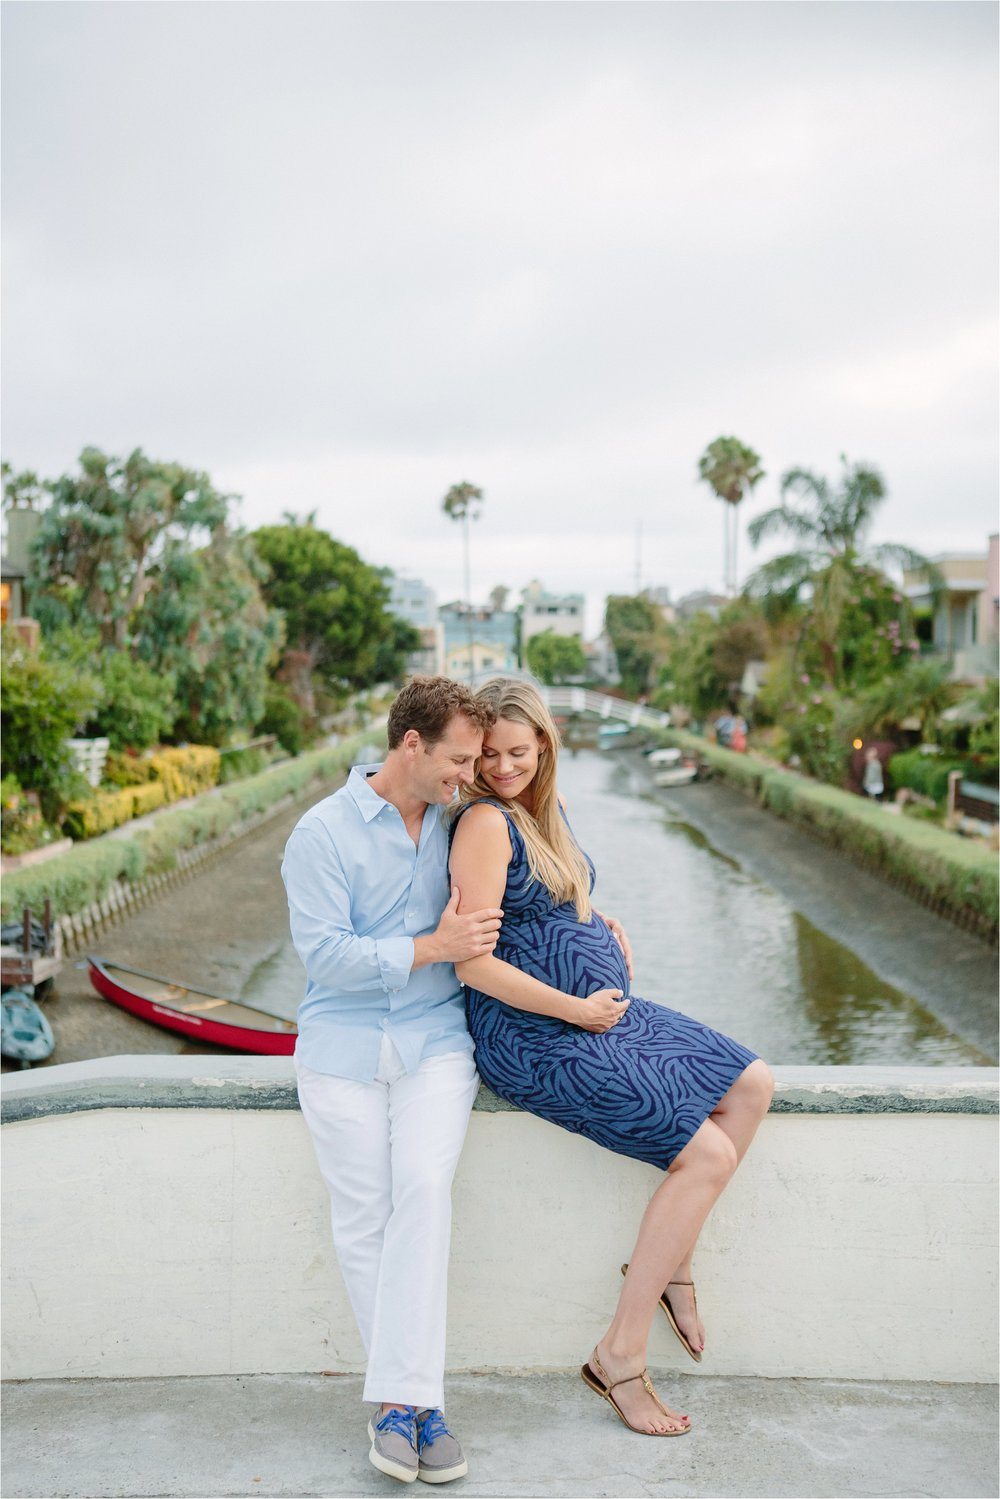 Venice Canals Expecting Parents Photo